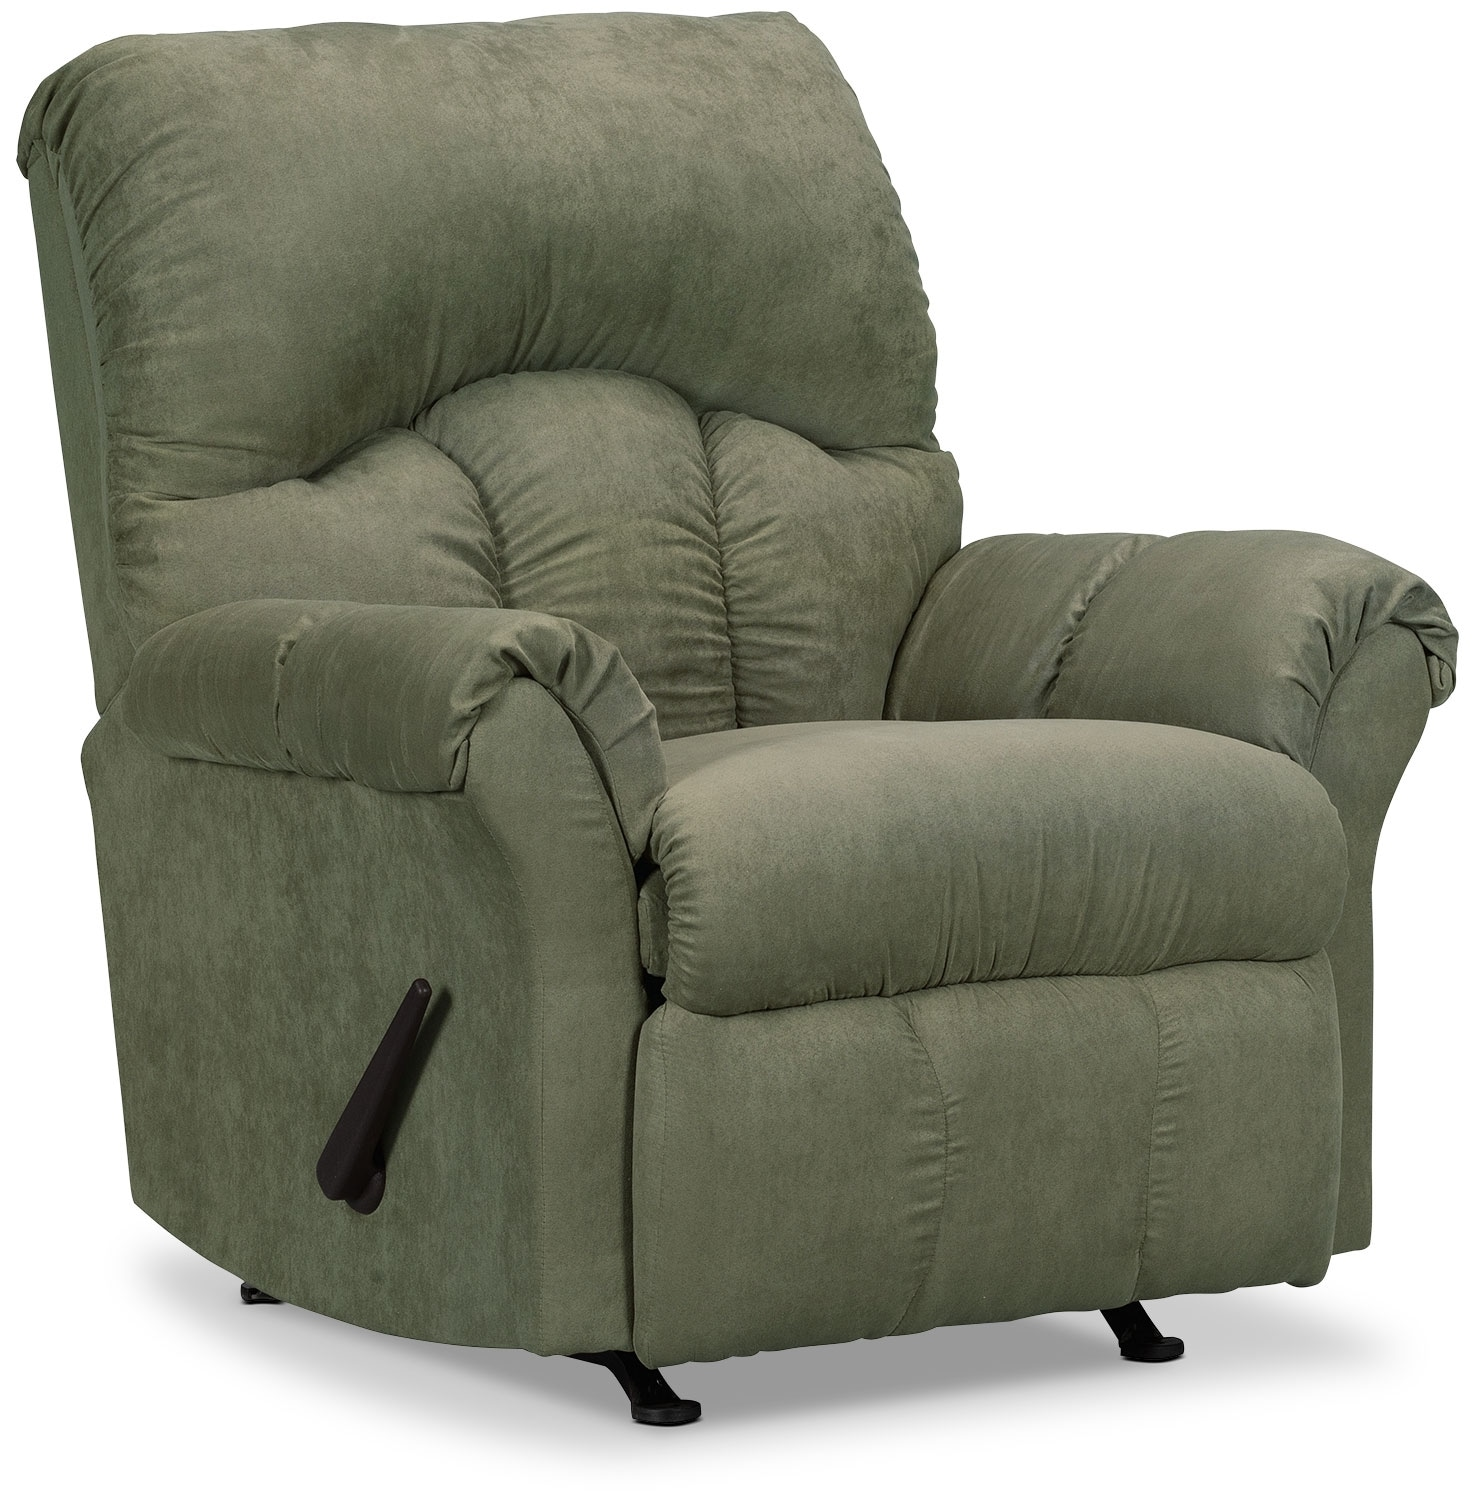 Designed2B Recliner 6734 Microsuede Rocking Chair - Fern